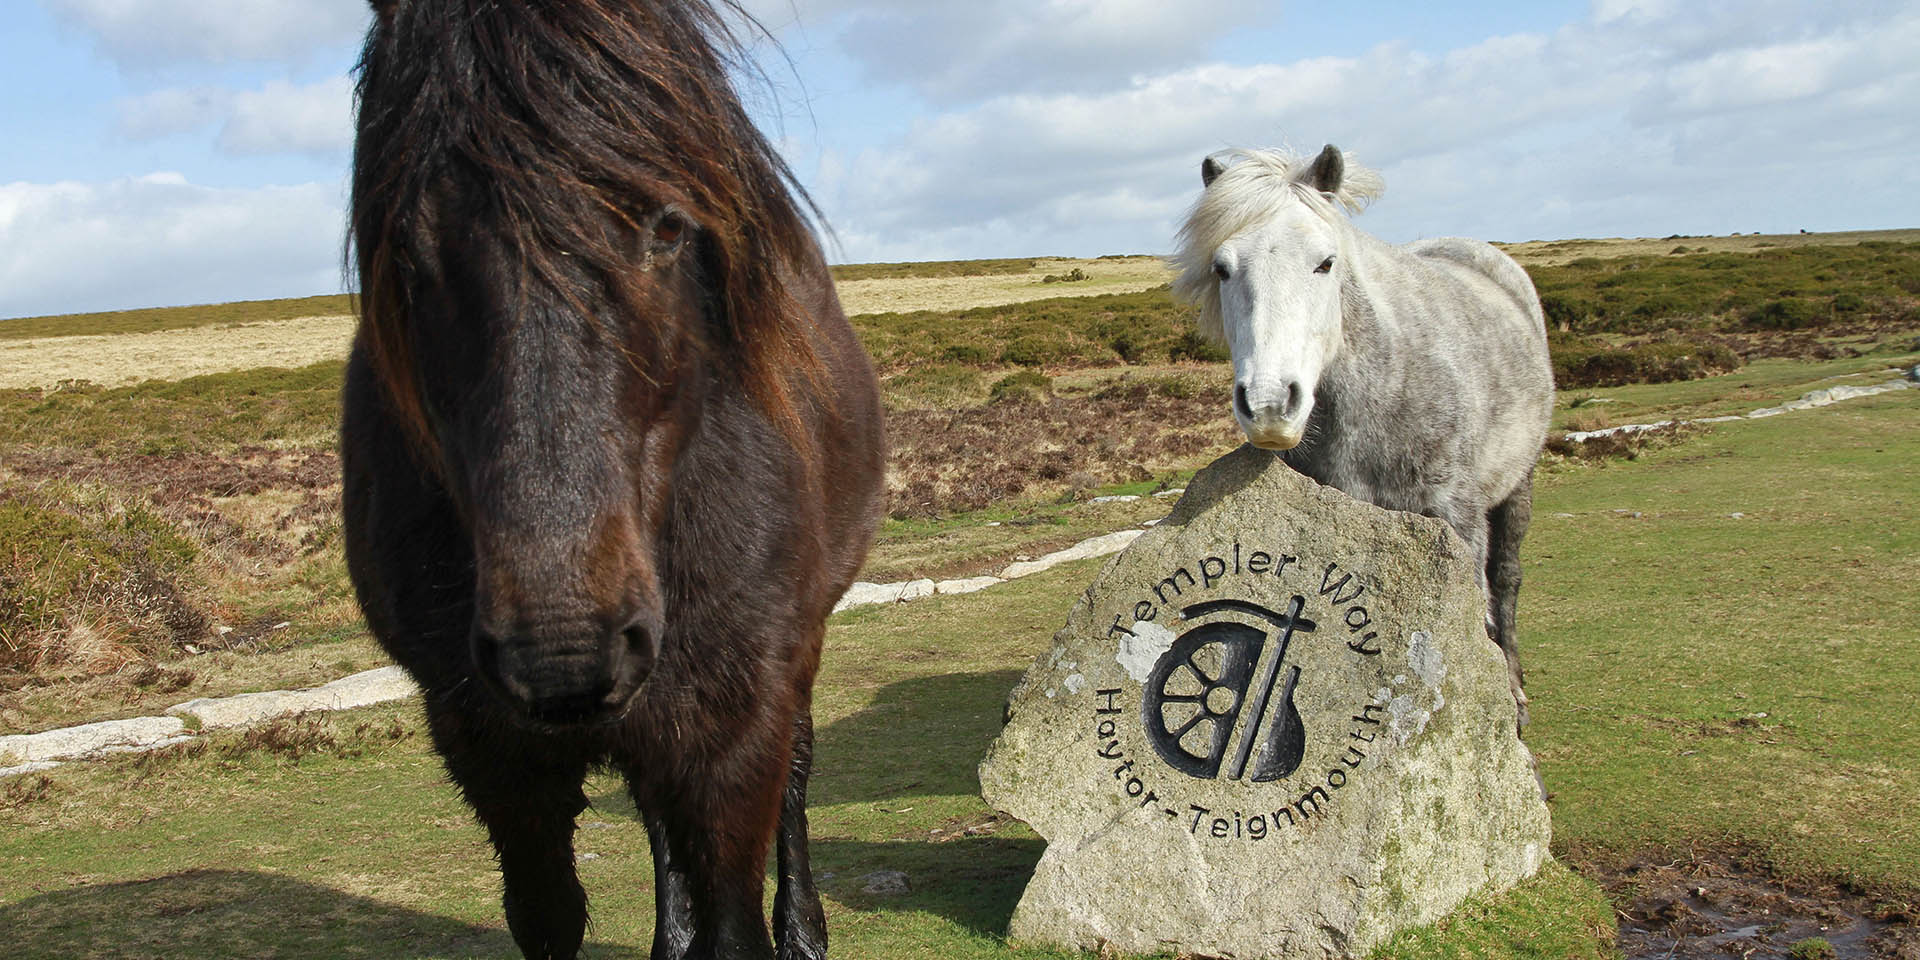 Ponies next to the Templer Way sign